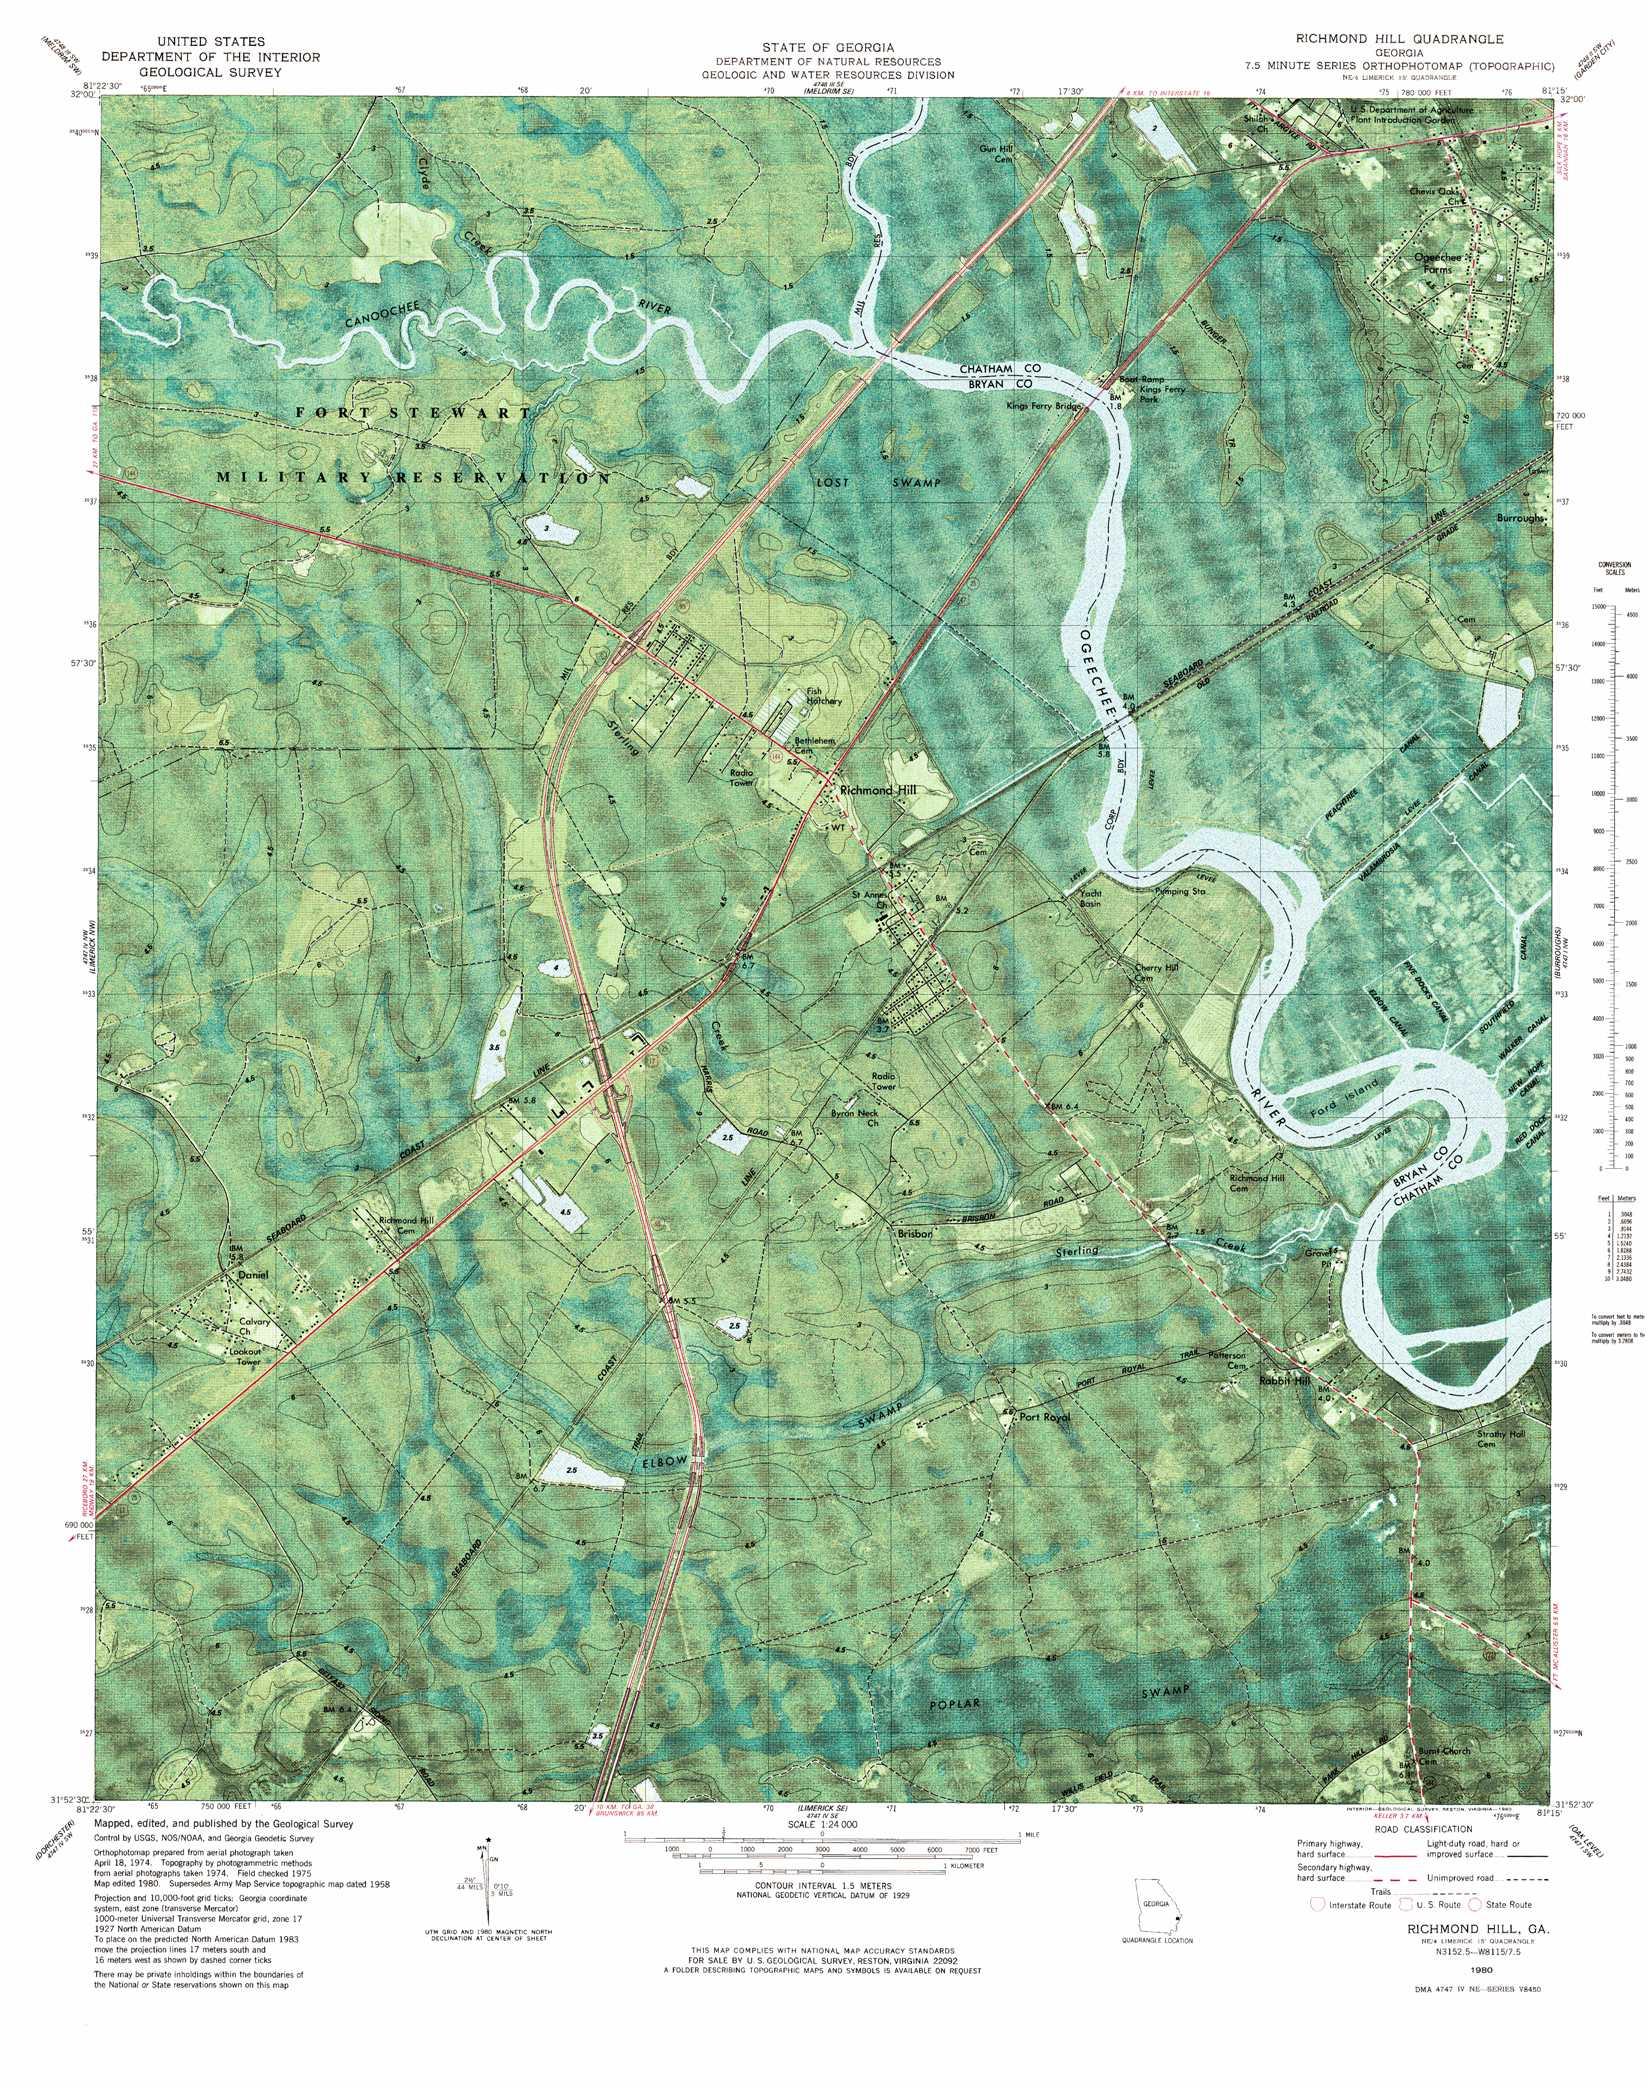 Hill Topographic Map.Richmond Hill Topographic Map Ga Usgs Topo Quad 31081h3